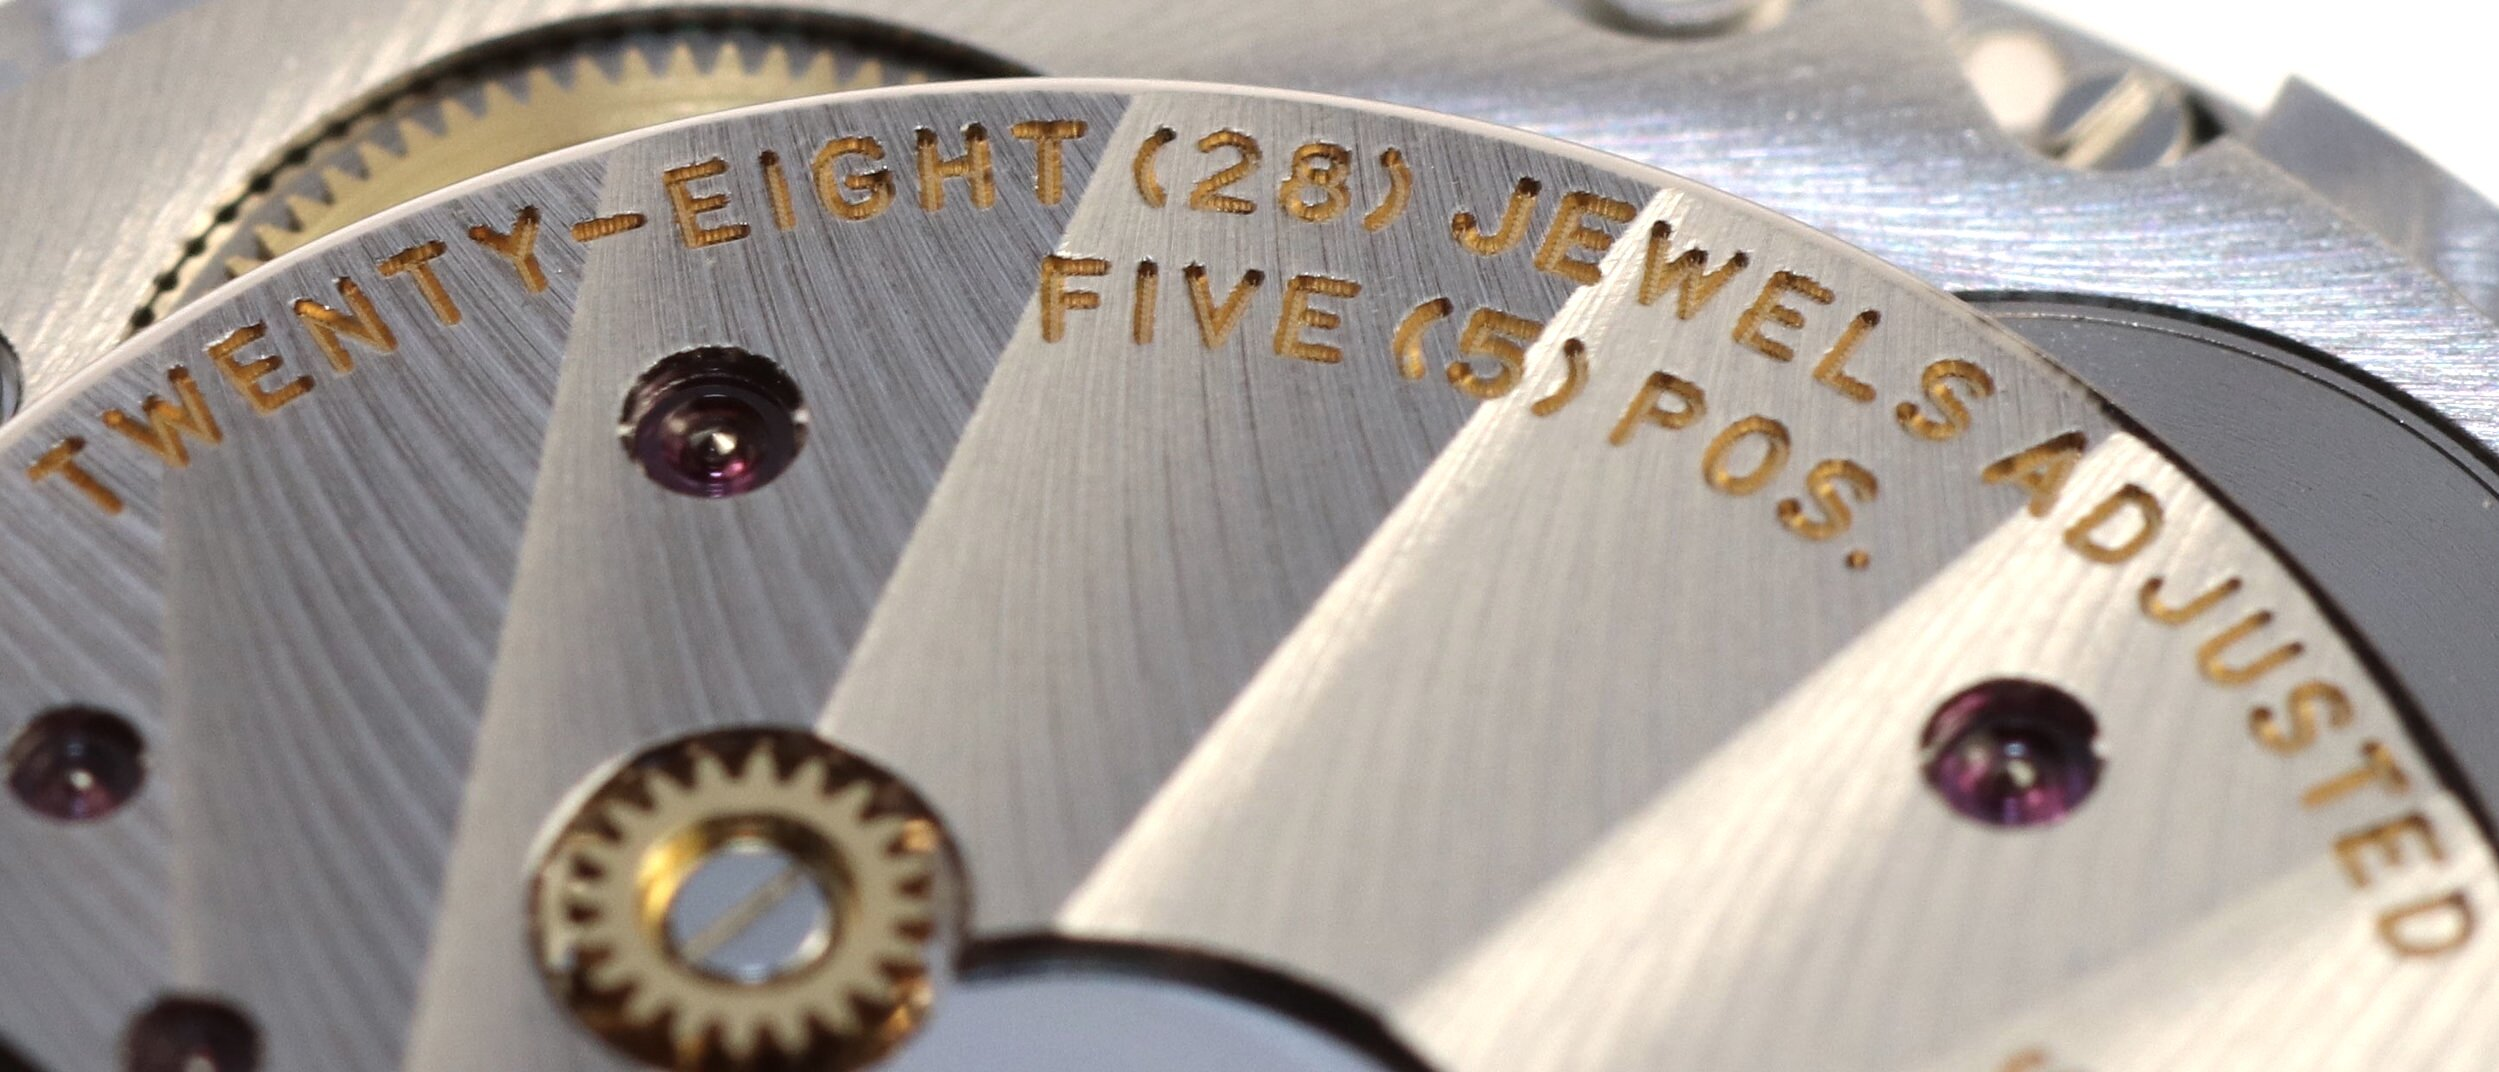 The top surface of the bridges are finished with Geneva stripes, the lower with a snailing effect. The engraving is executed at the same time as the bridge is machined.